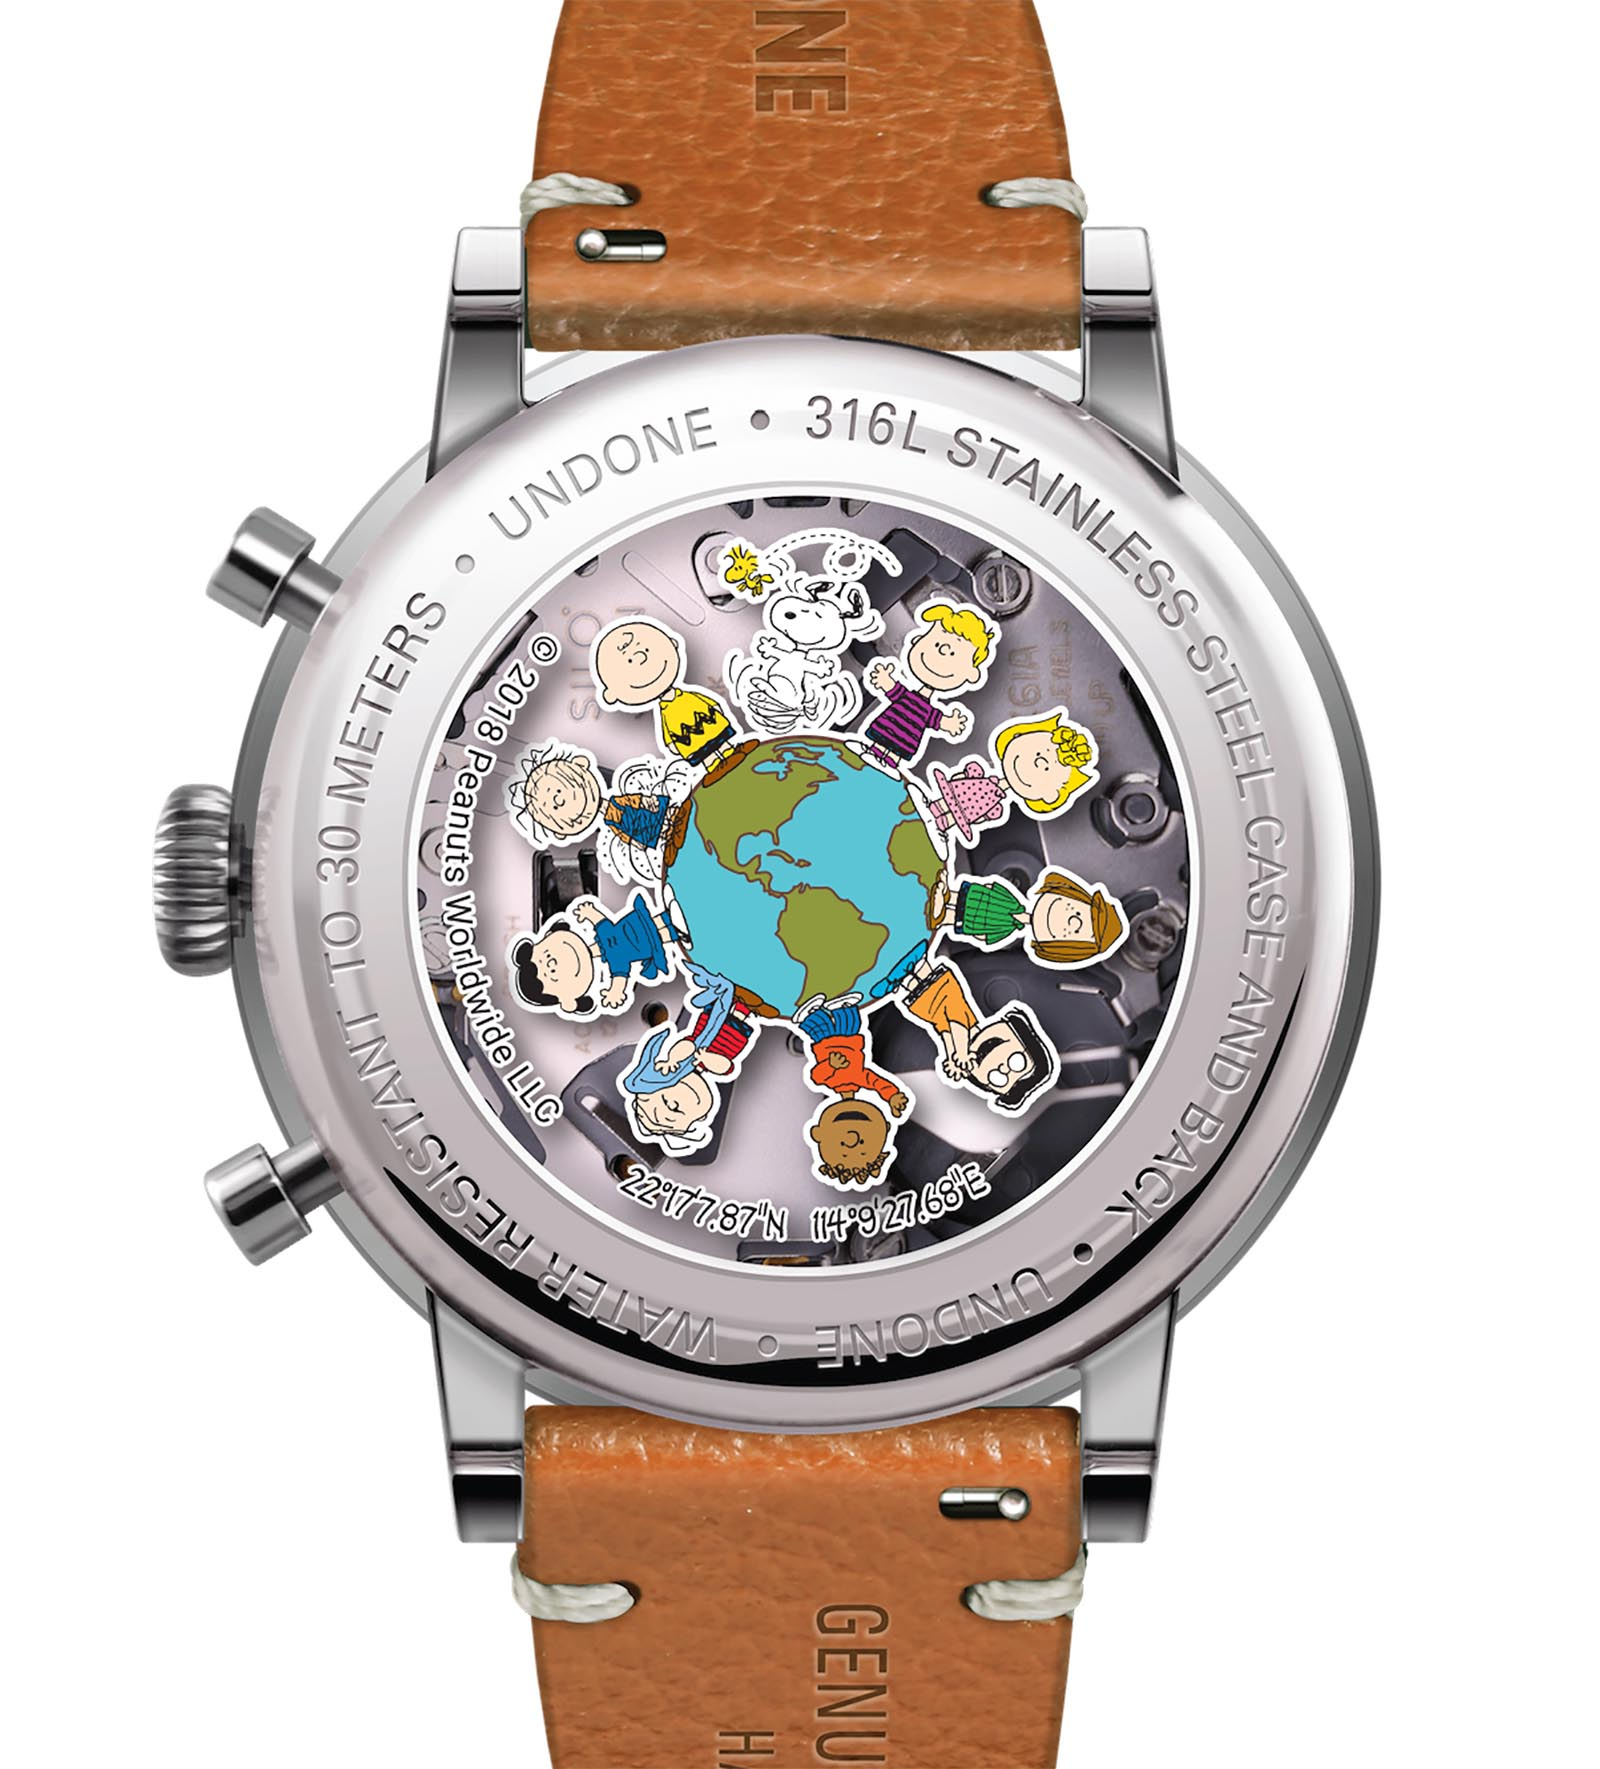 Undone Peanuts Urban One World Chronograph caseback